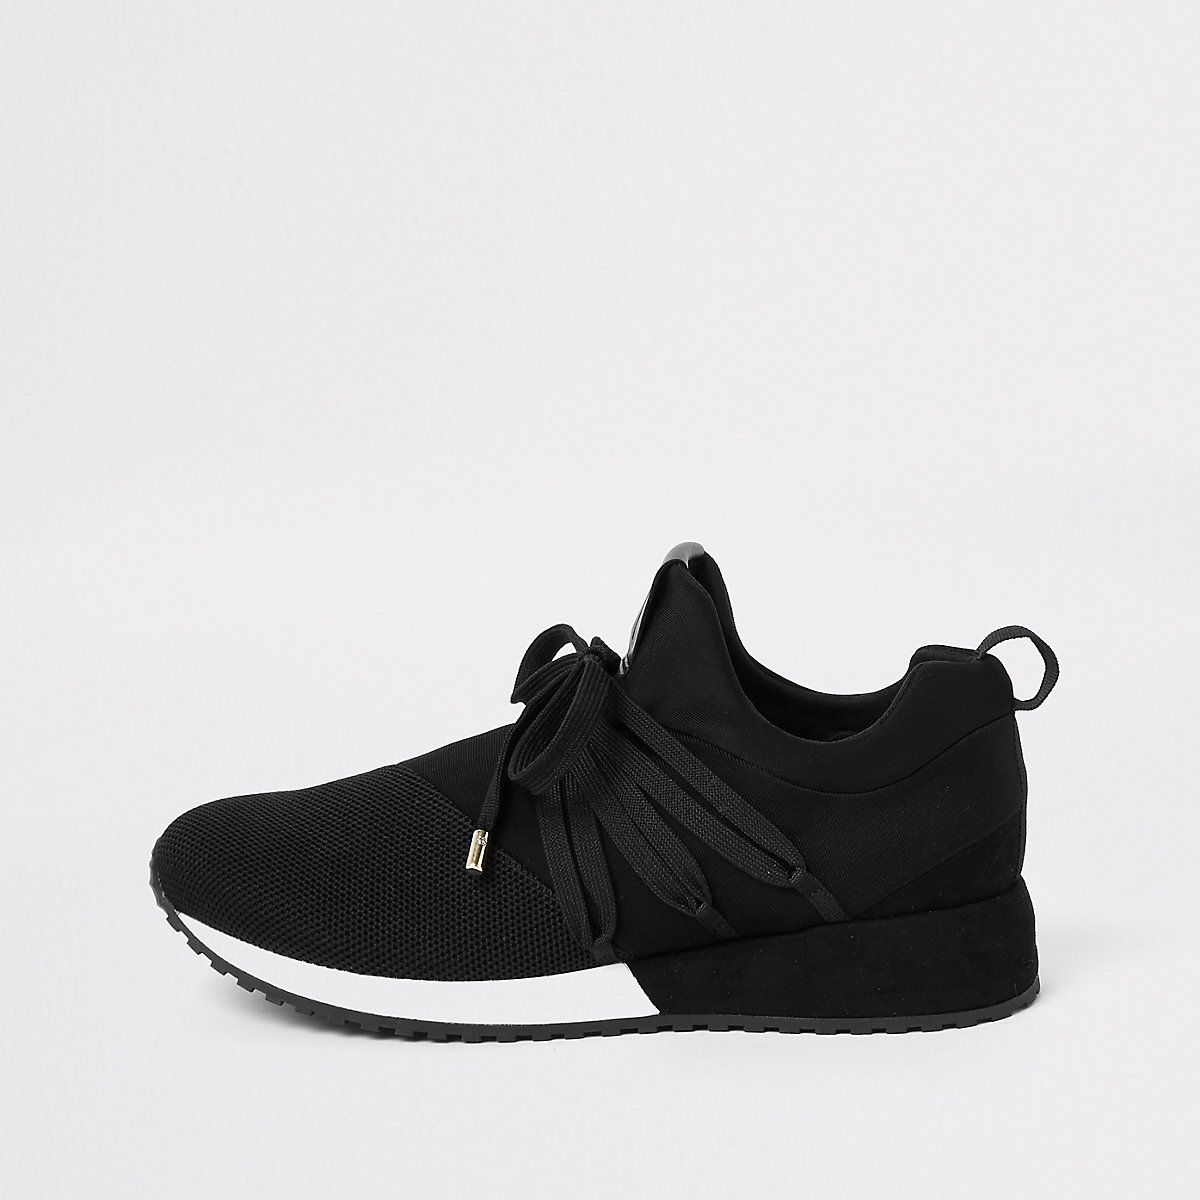 Black RI lace up runner trainers